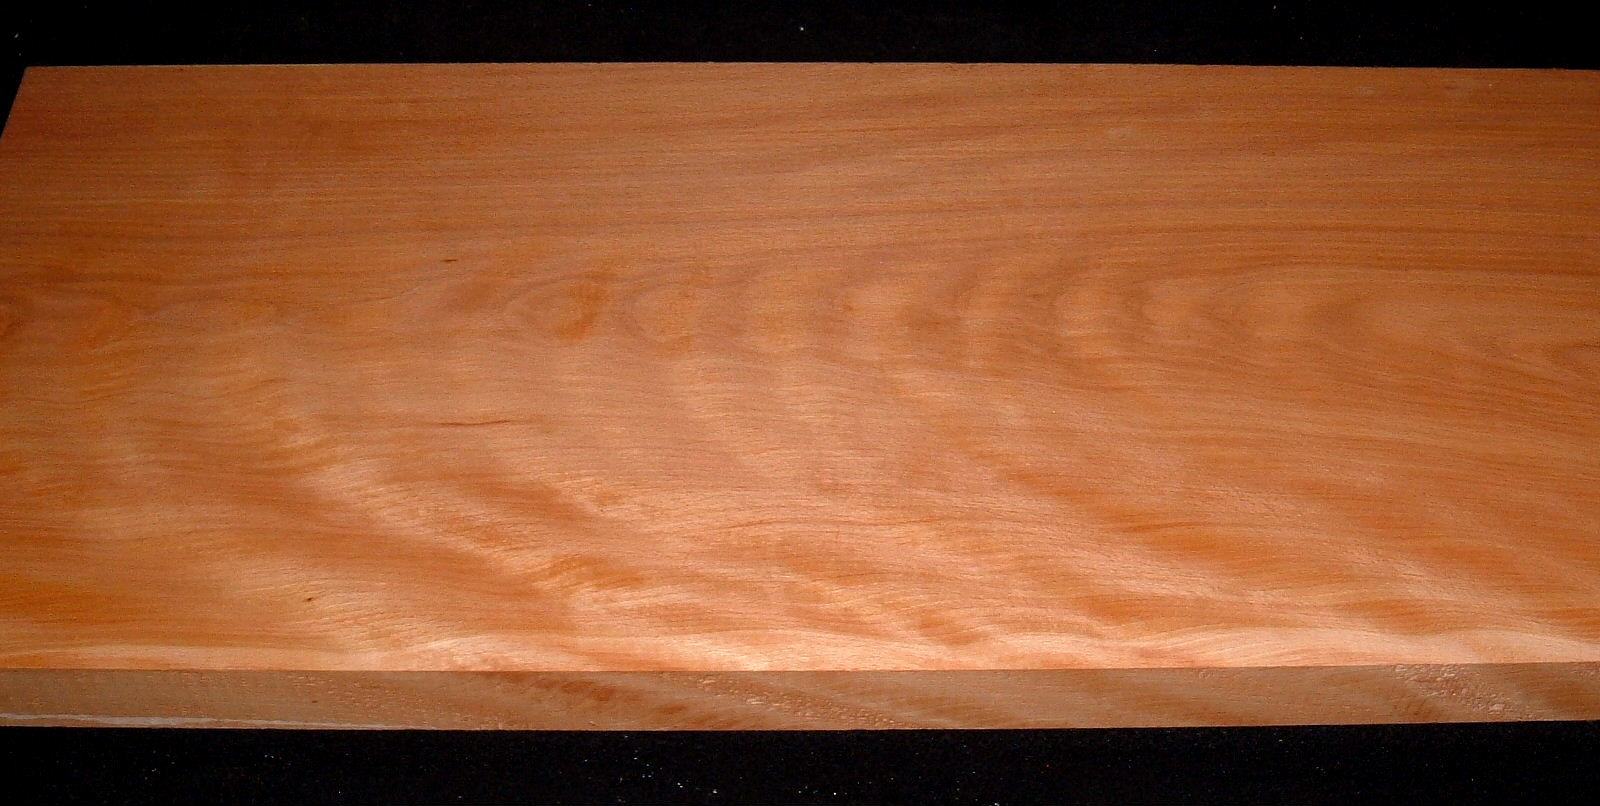 S-2480, 1-5/8x11-3/8x26+, 7/4 Curly Figured Beech Wood